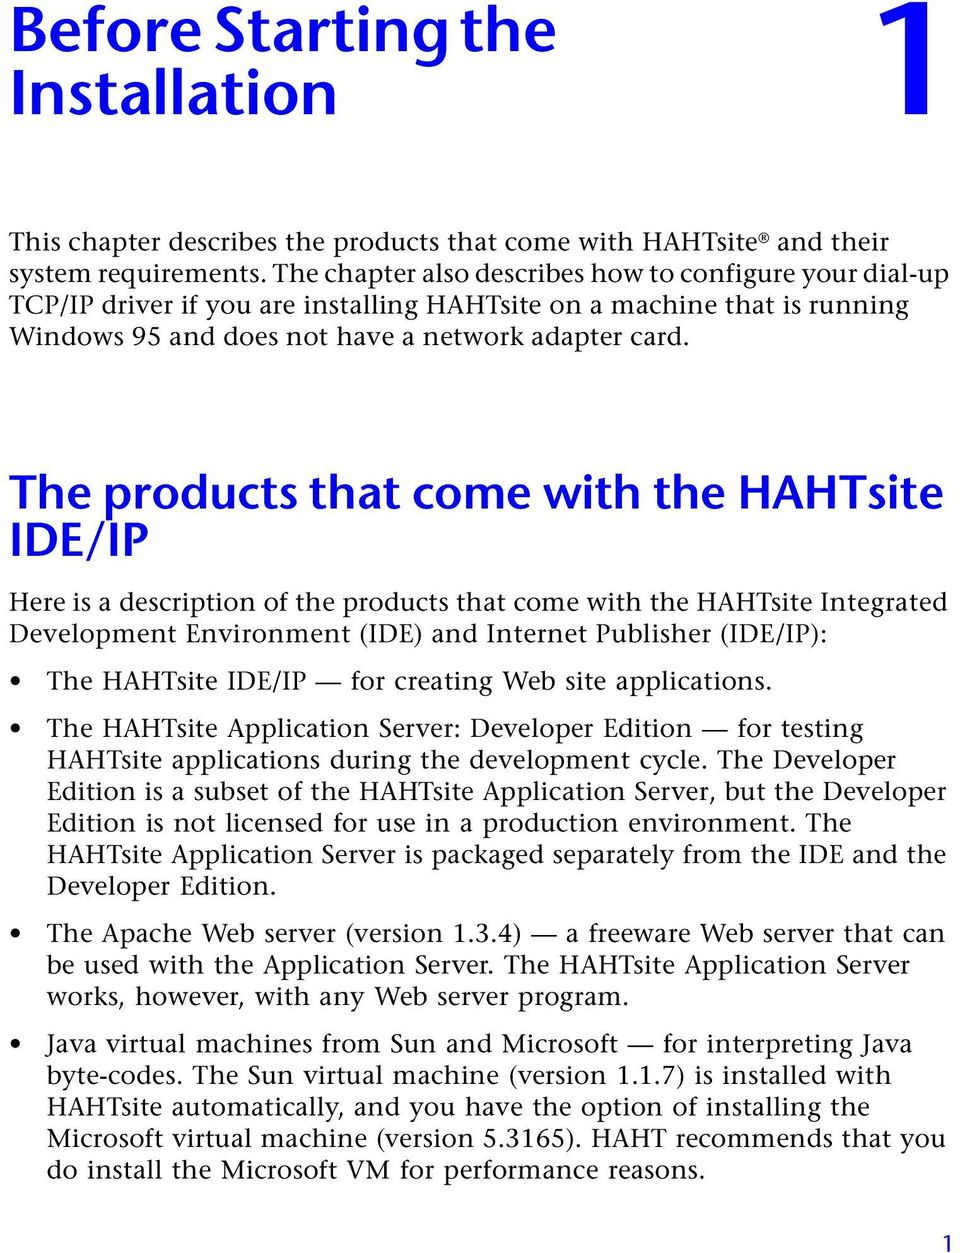 HAHTsite IDE and IP Installation Guide - PDF